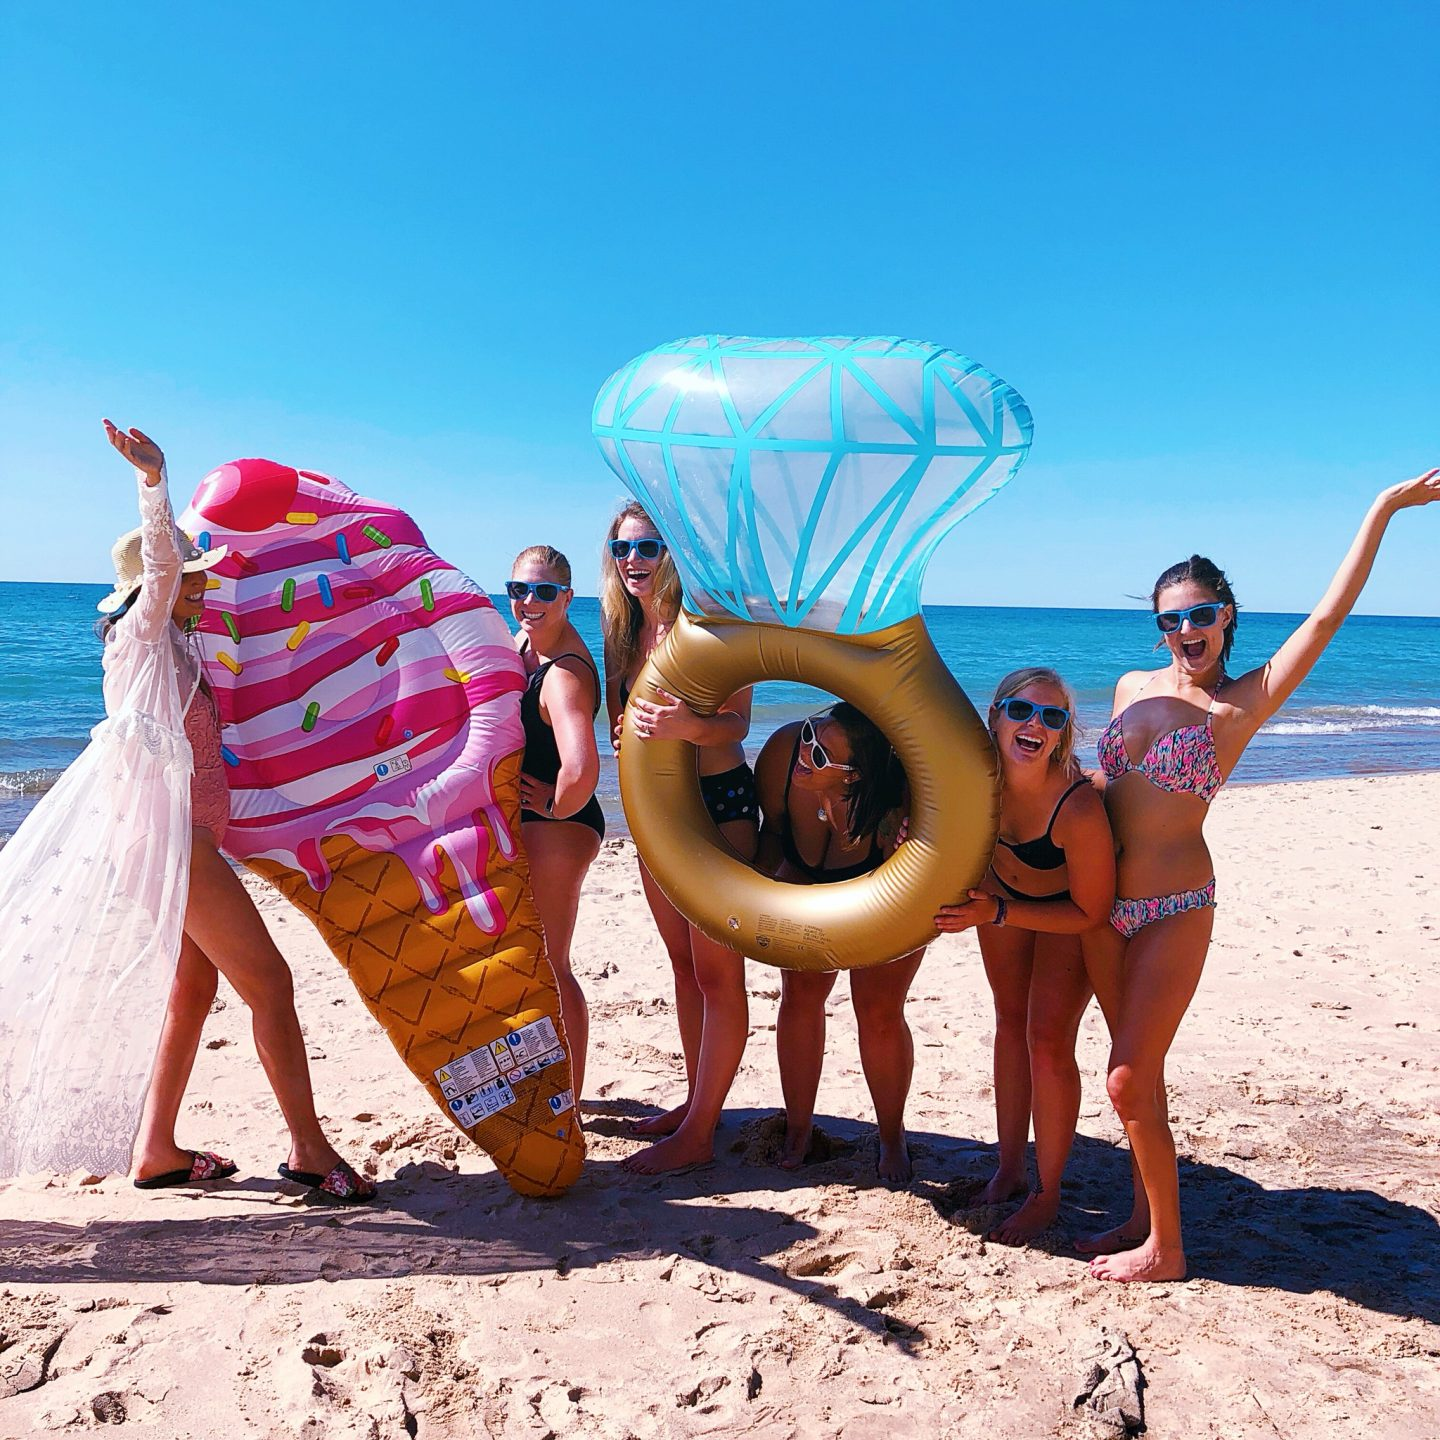 Bachelorette party that's affordable and fun, lake michigan, union pier michigan, michigan bachelorette part, diamond ring floatie, ice cream pool floatie, affordable bachelorette party